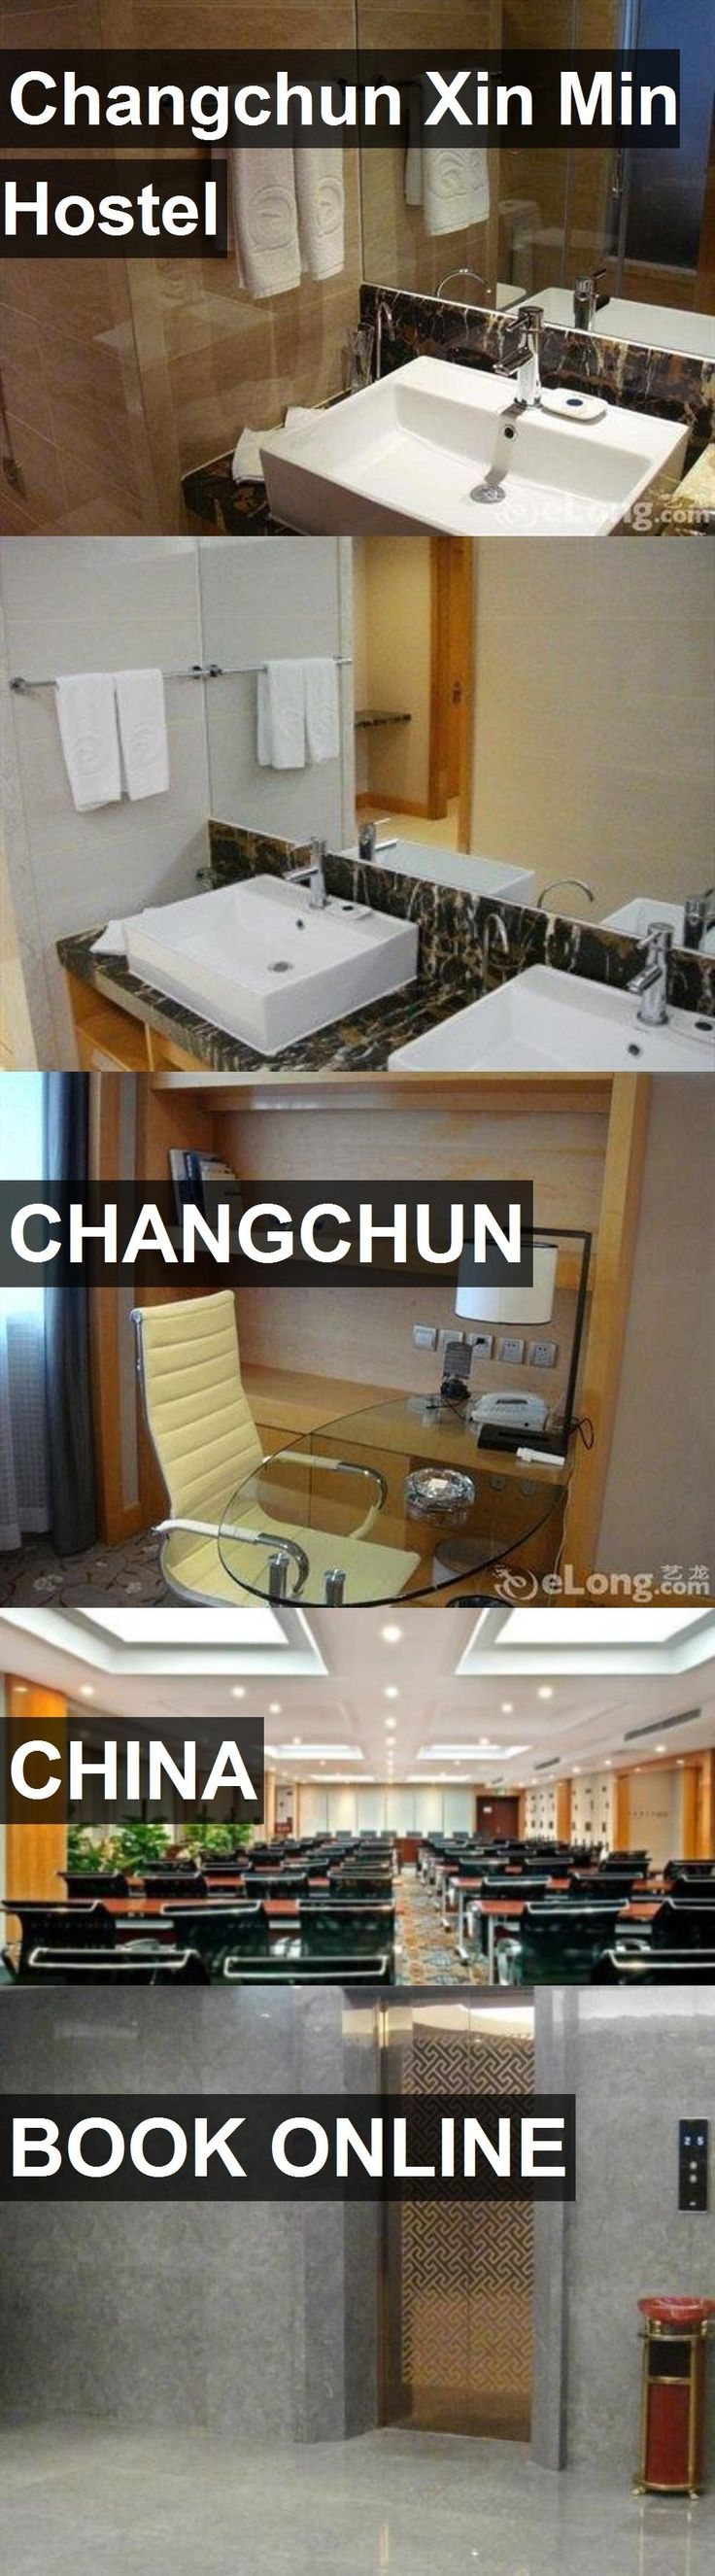 Hotel Changchun Xin Min Hostel in Changchun, China. For more information, photos, reviews and best prices please follow the link. #China #Changchun #ChangchunXinMinHostel #hotel #travel #vacation